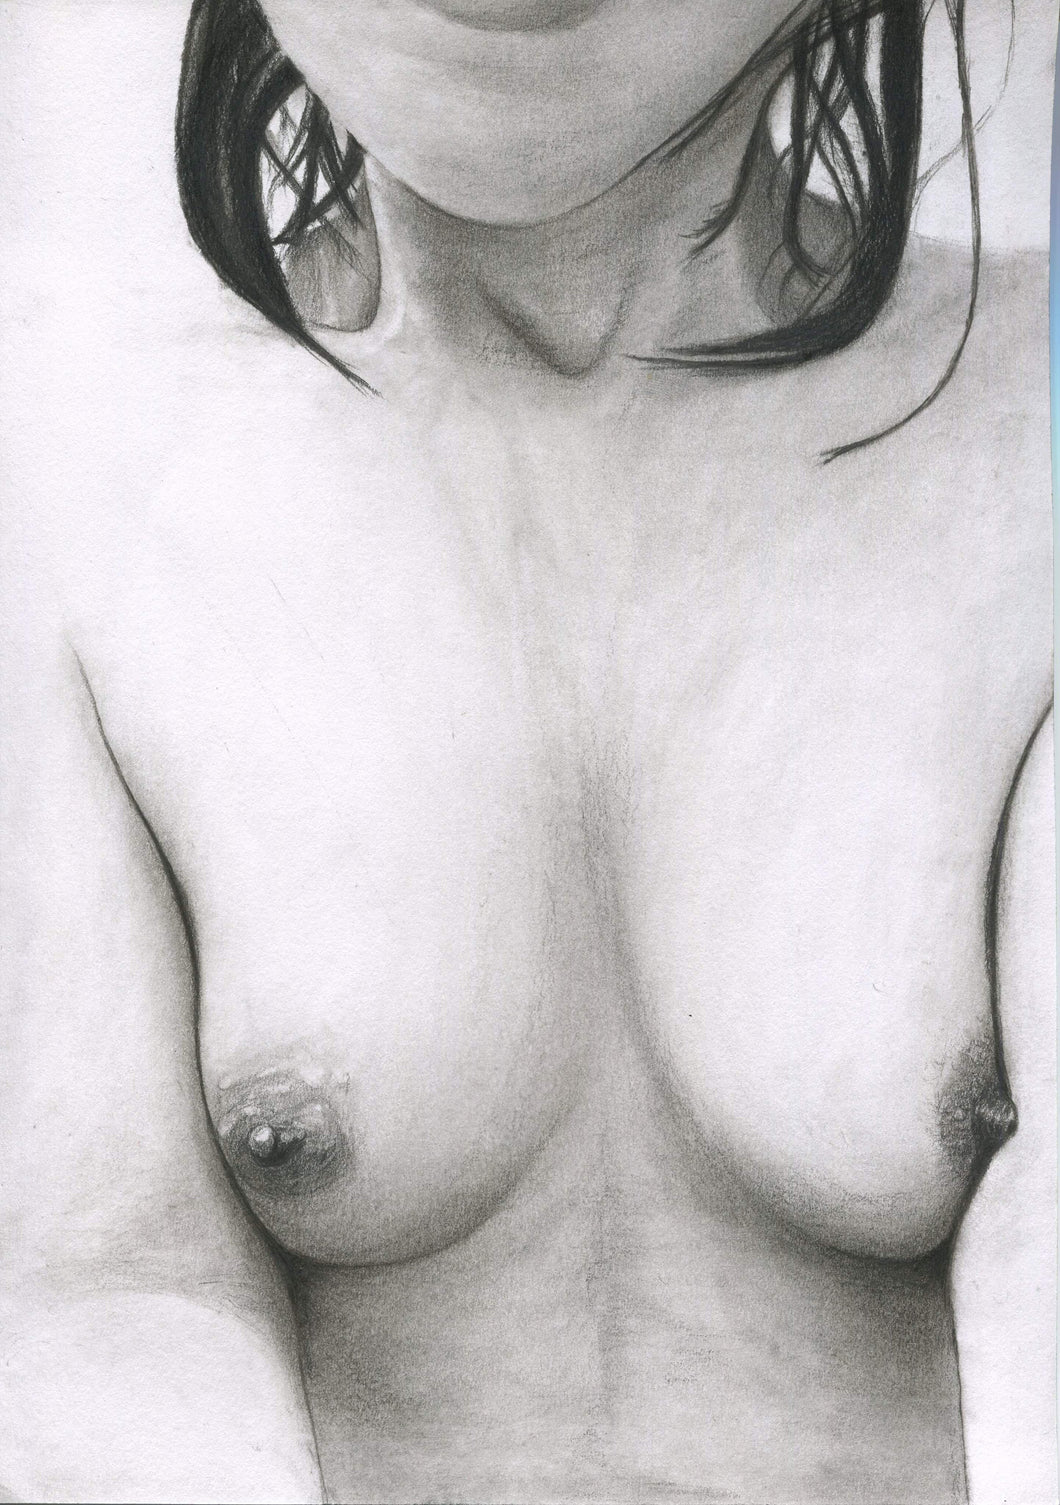 Come to me - nude erotic art pencil charcoal drawing Fine Art Print wall decor